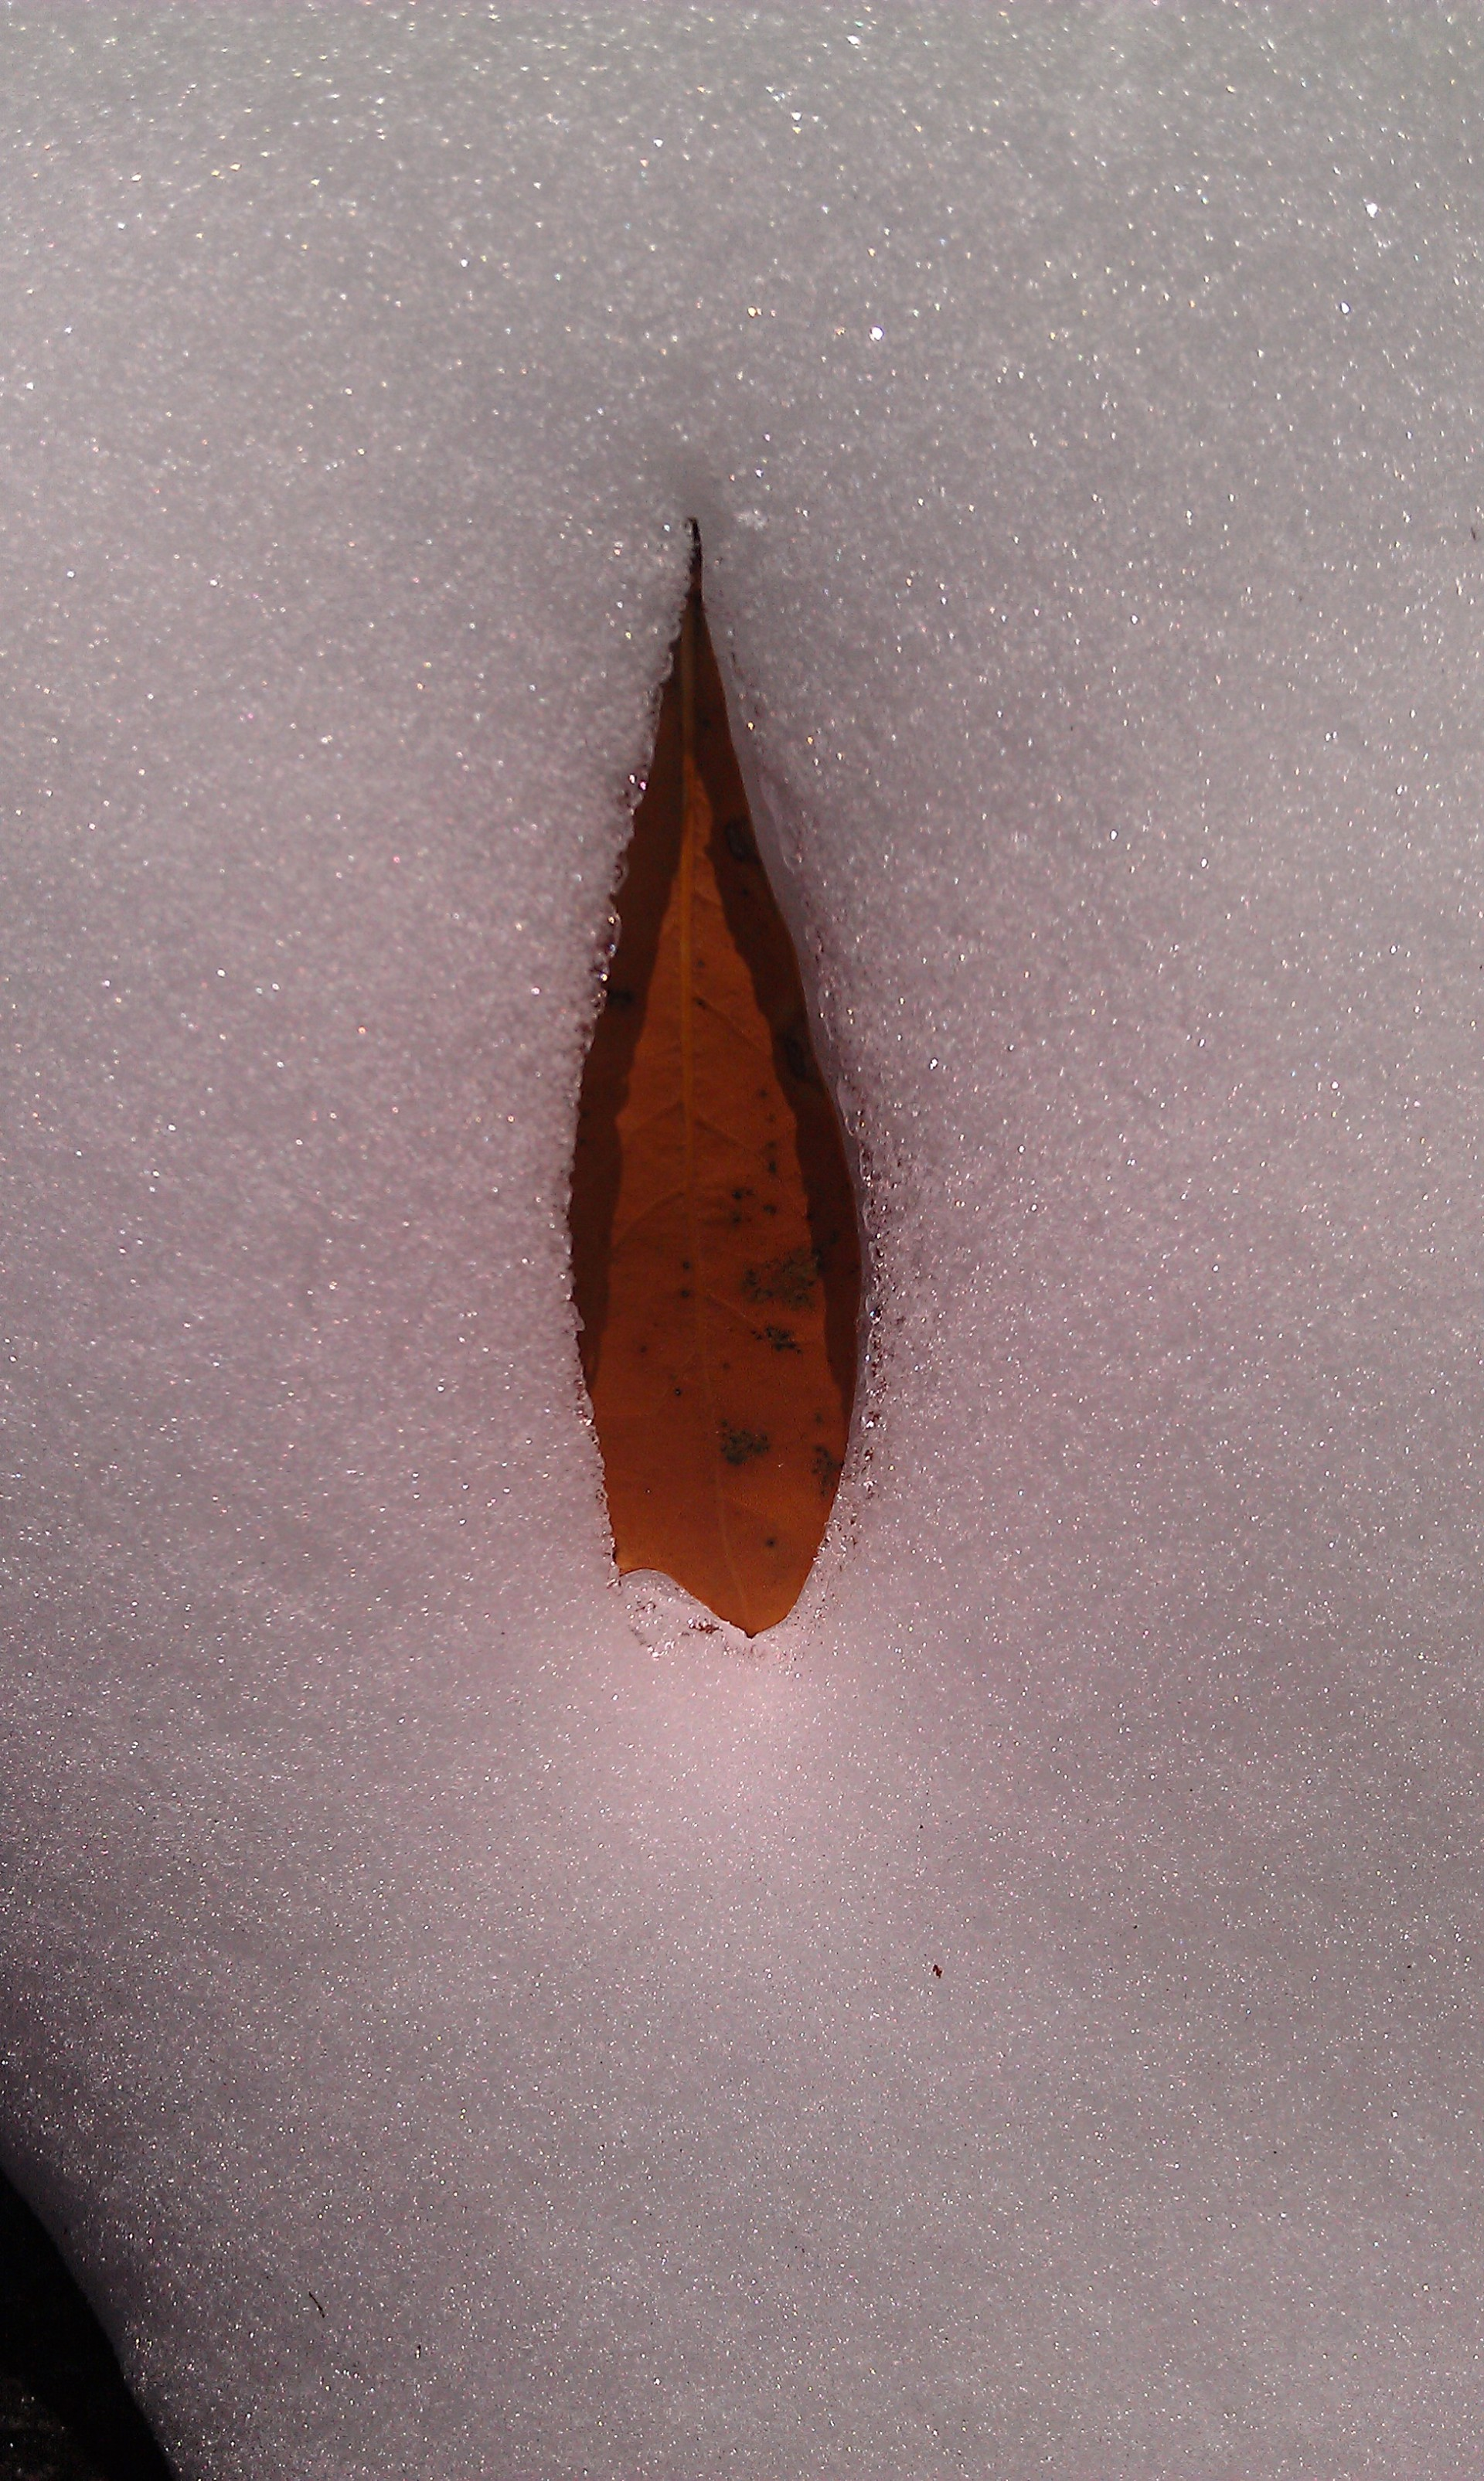 Falling, leaf on snow